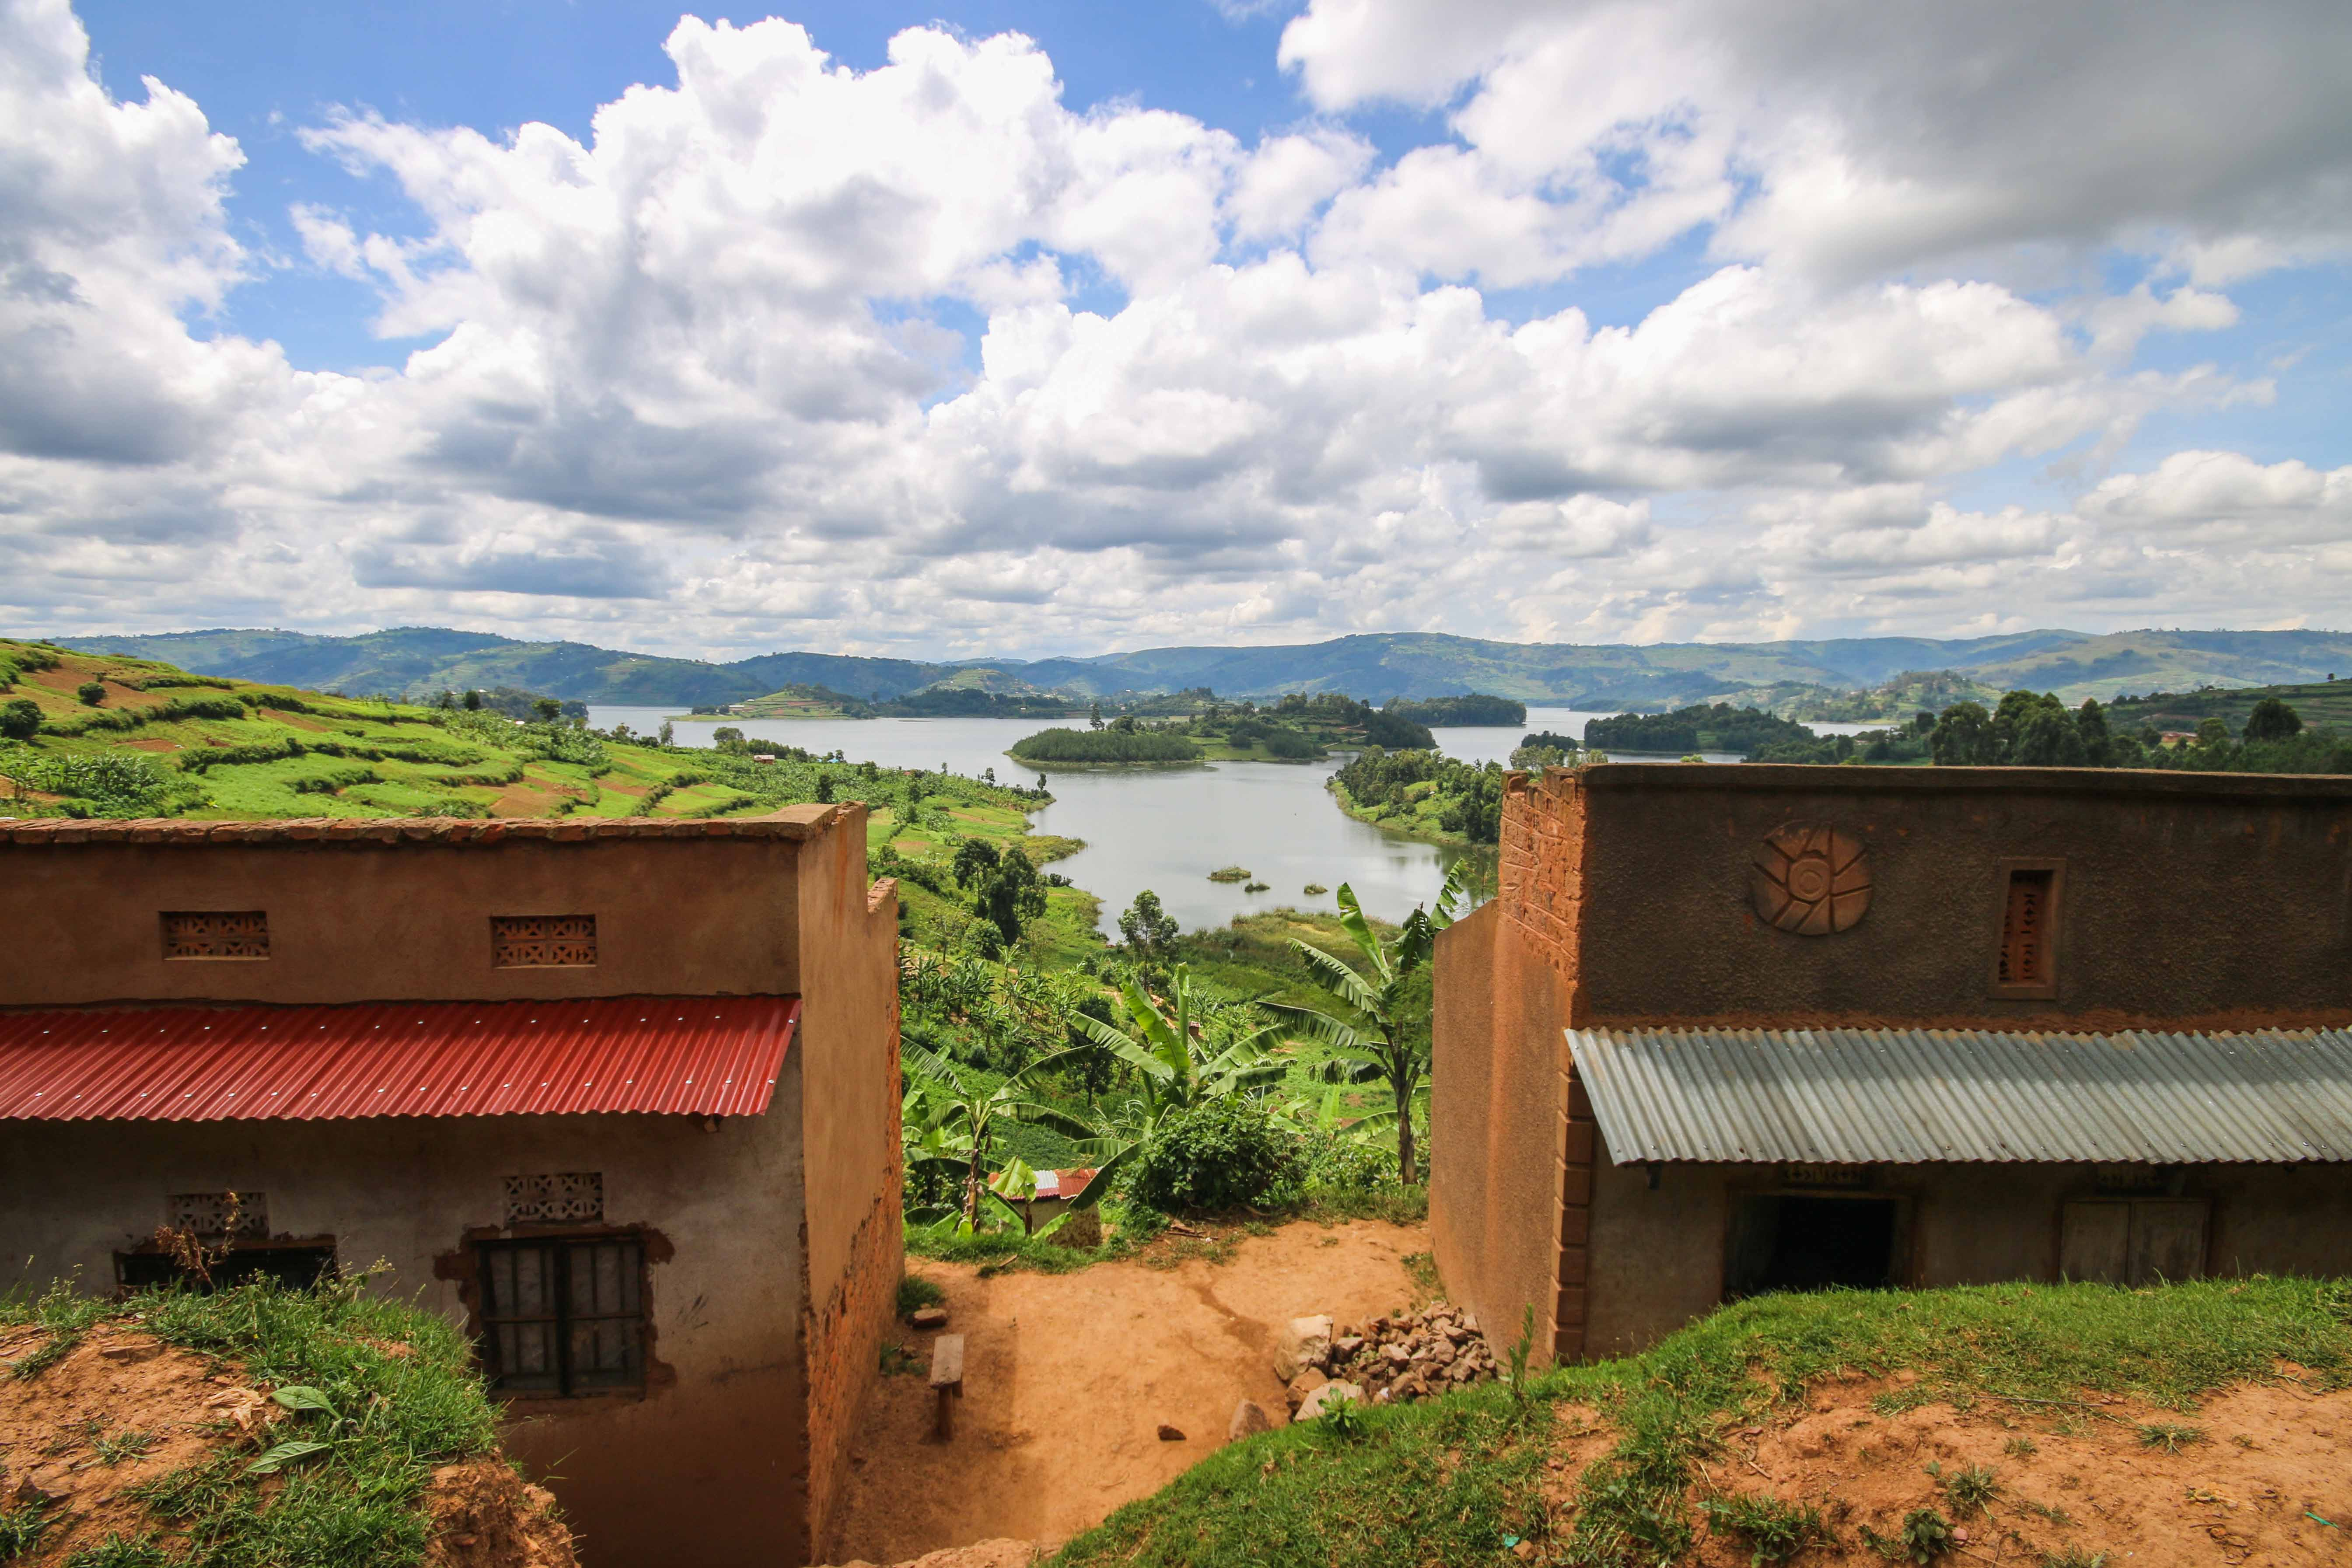 Lake Bunyonyi in Bwindi national park, Uganda